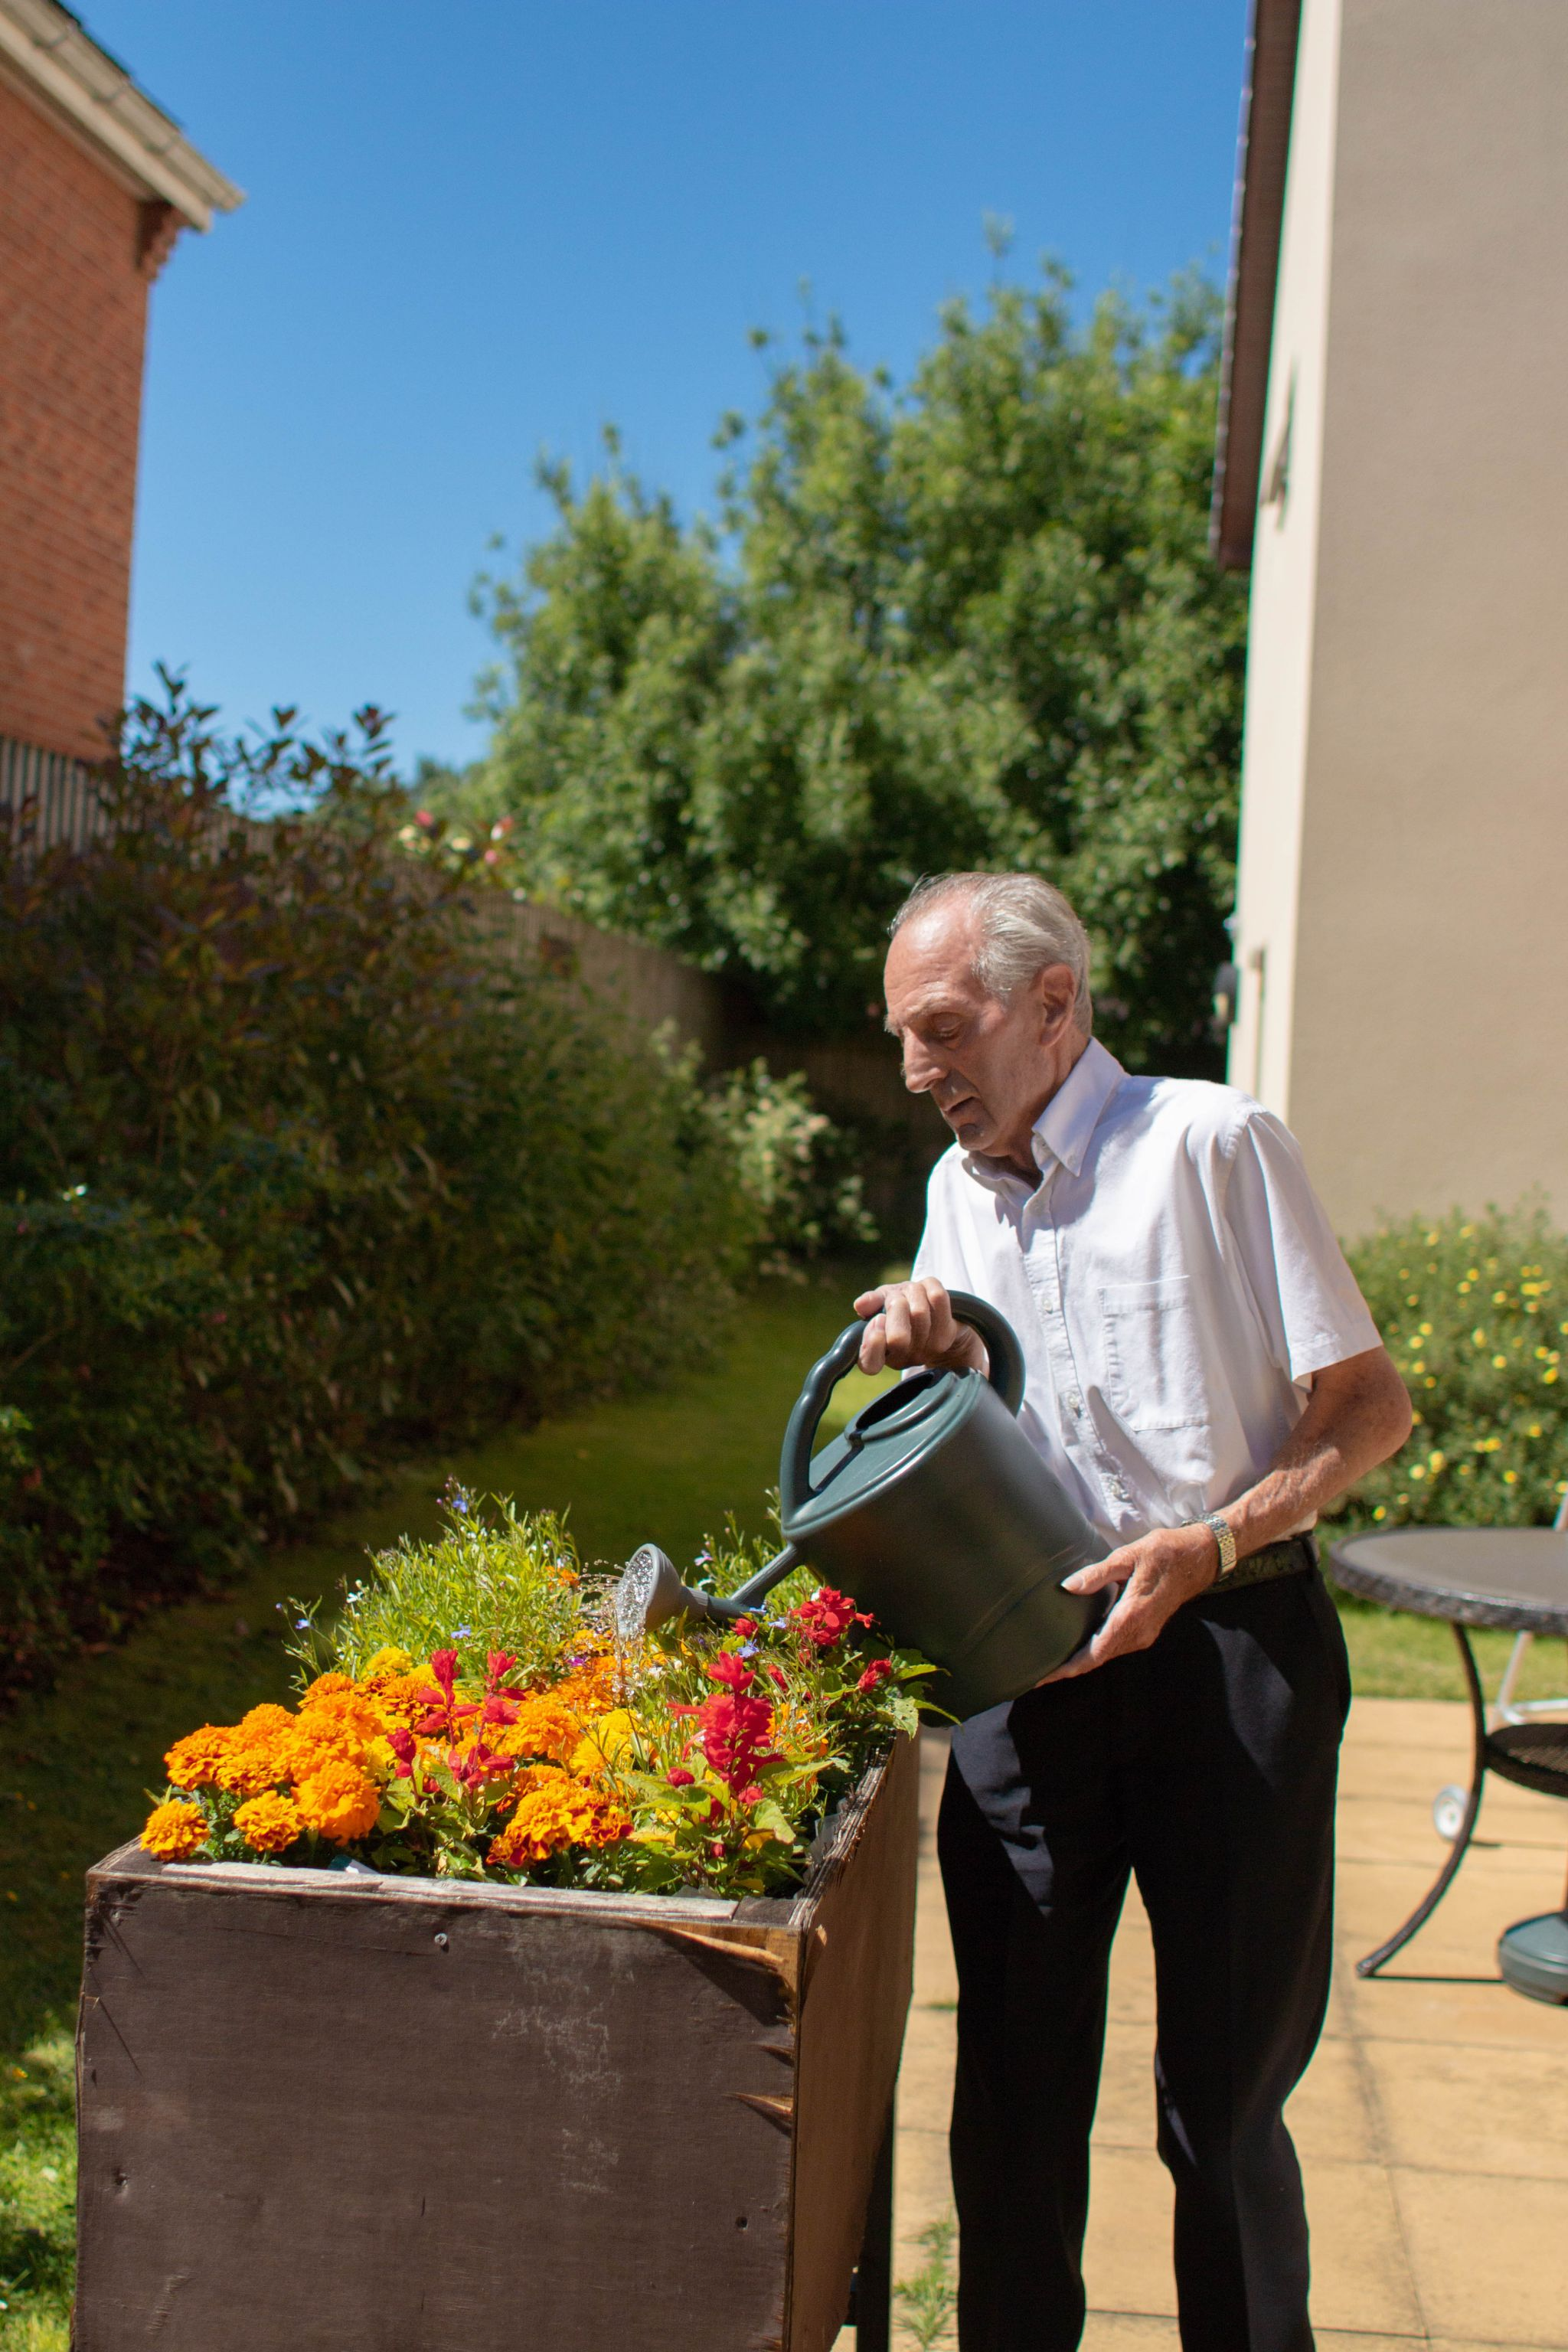 craig healthcare residents lifestyle photography hannah layford resident tending garden